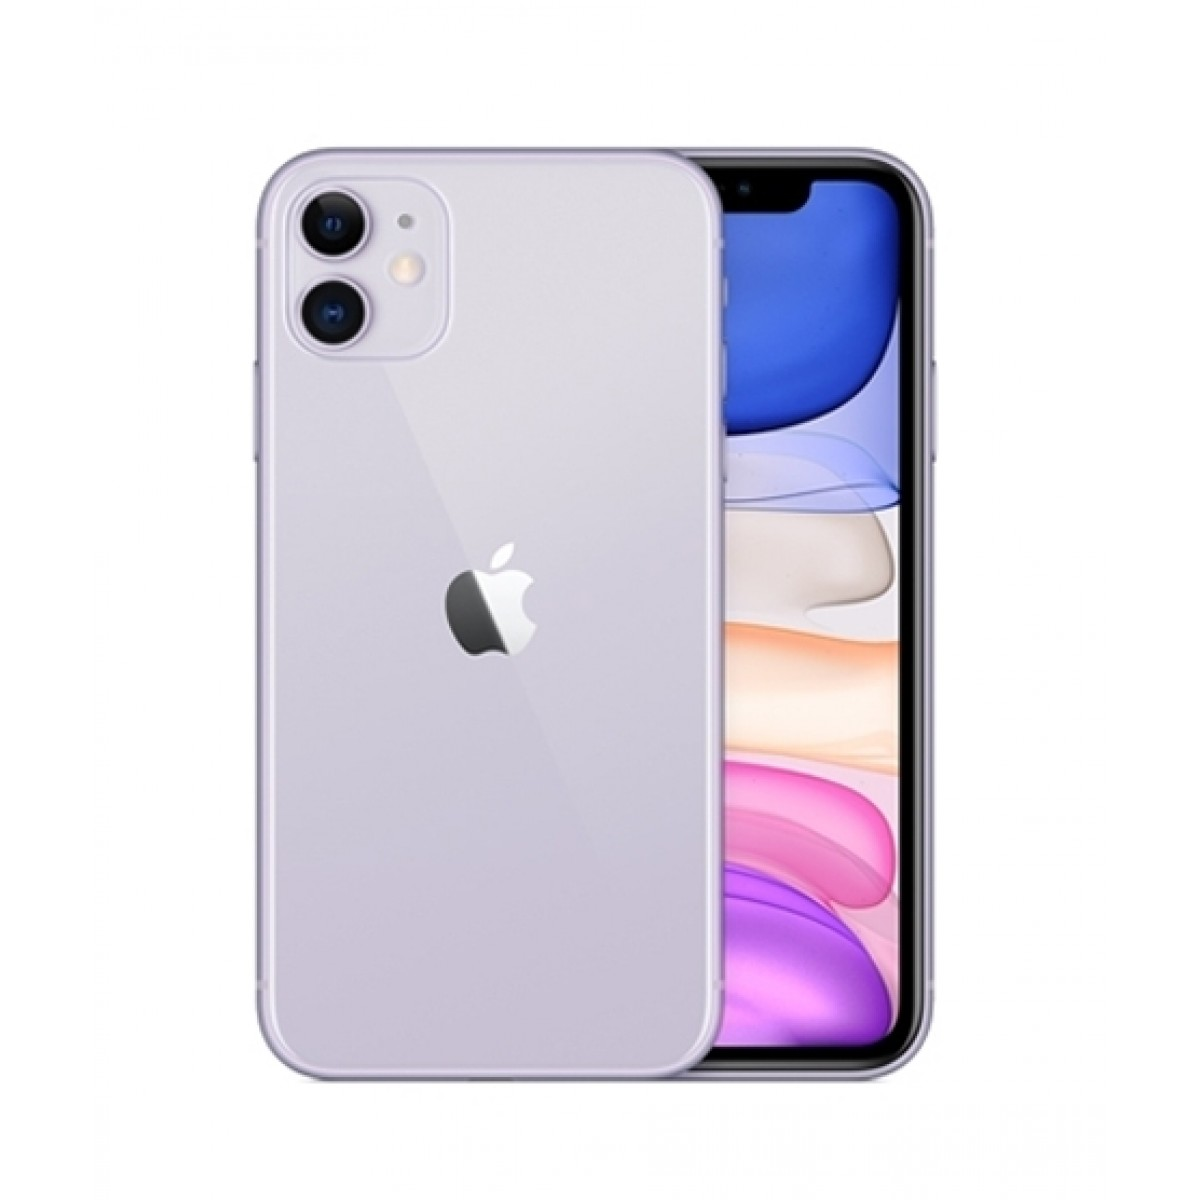 Apple iPhone 11 128GB Dual Sim Purple - Non PTA Compliant